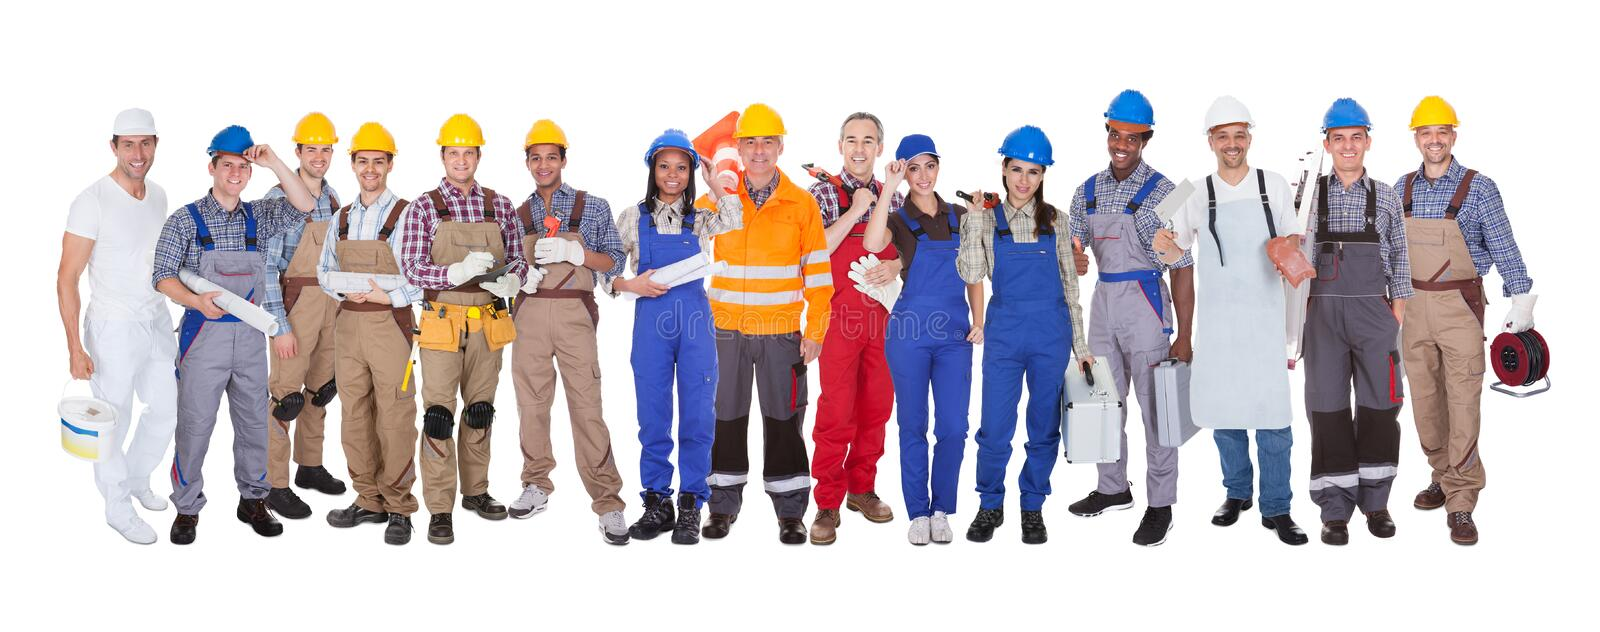 Group of construction workers royalty free stock photography